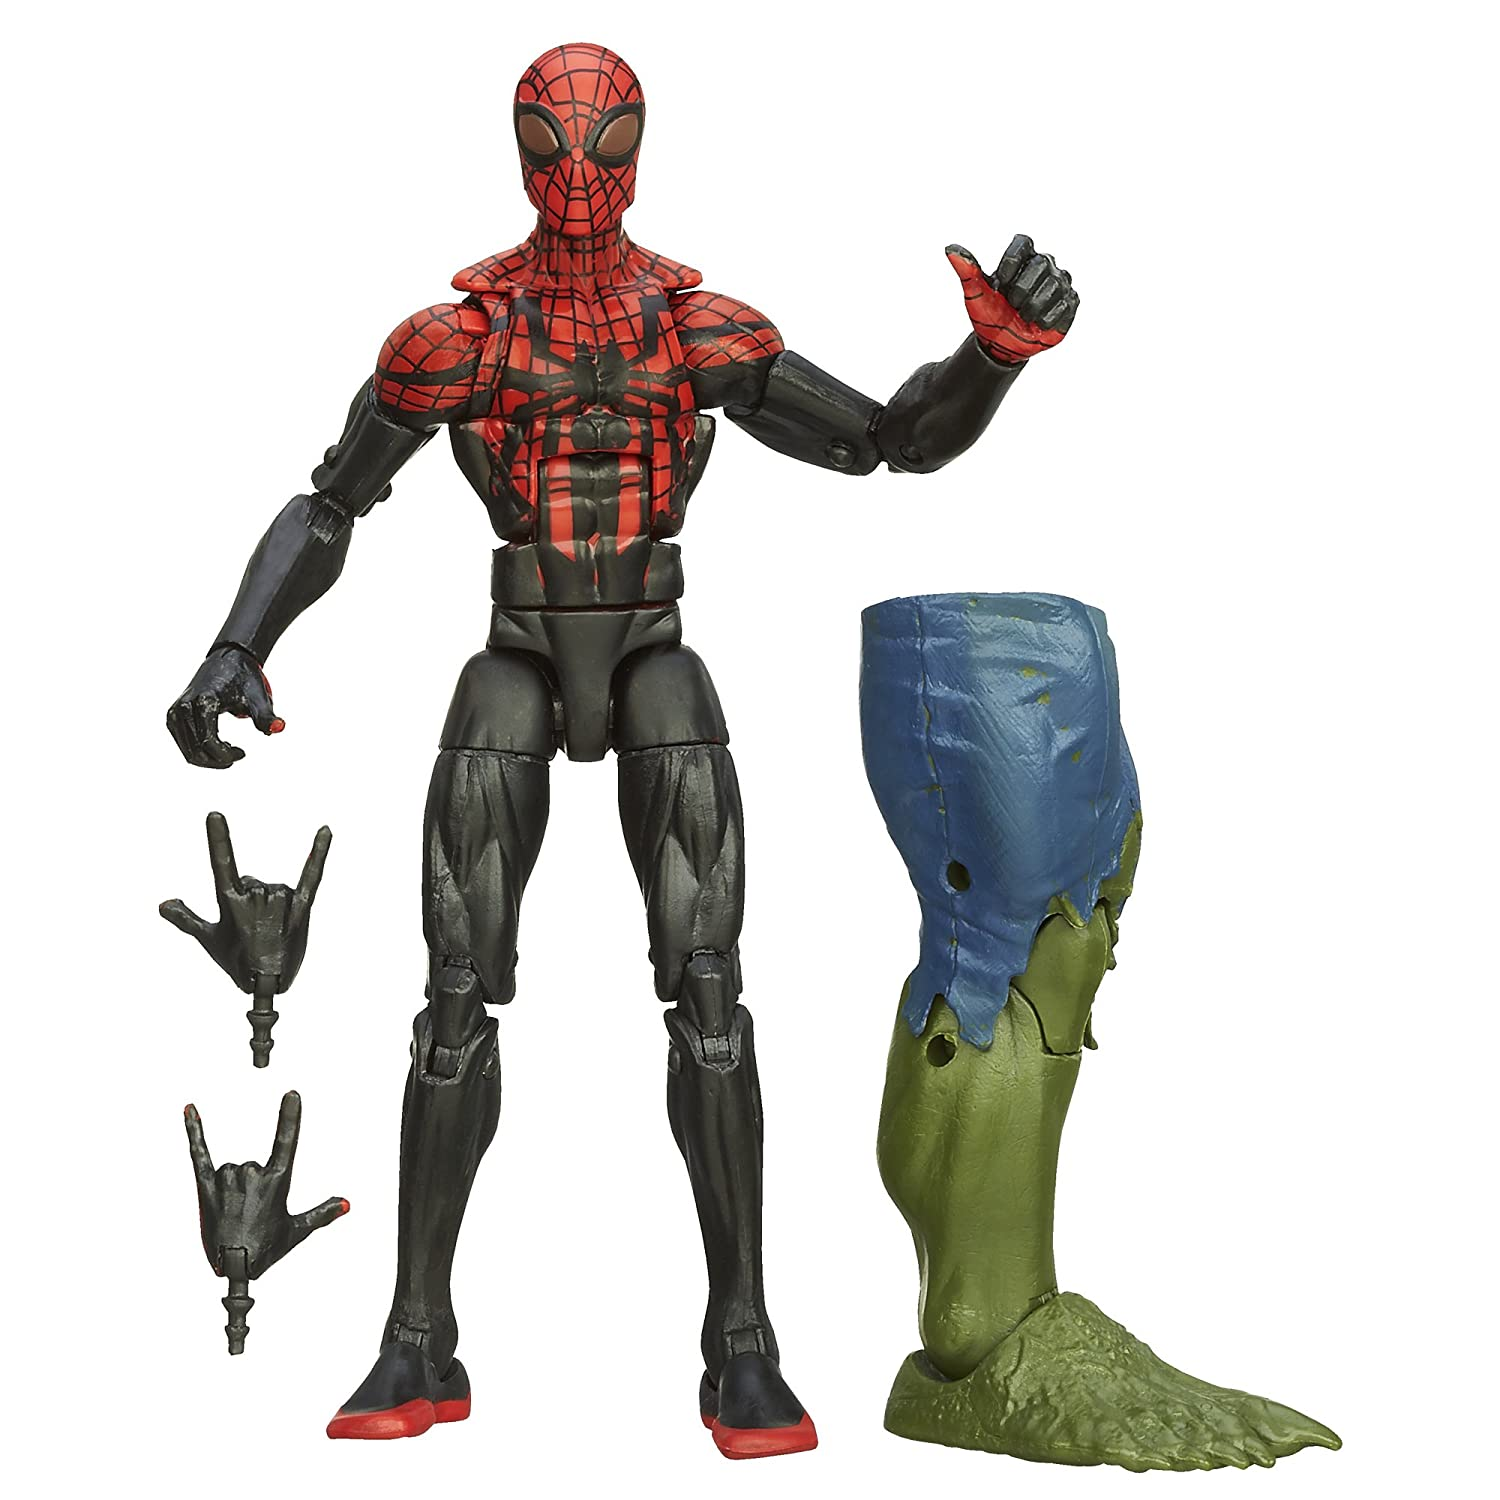 Spider-Man The Superior Spider-Man 15cm [UK Import] bestellen